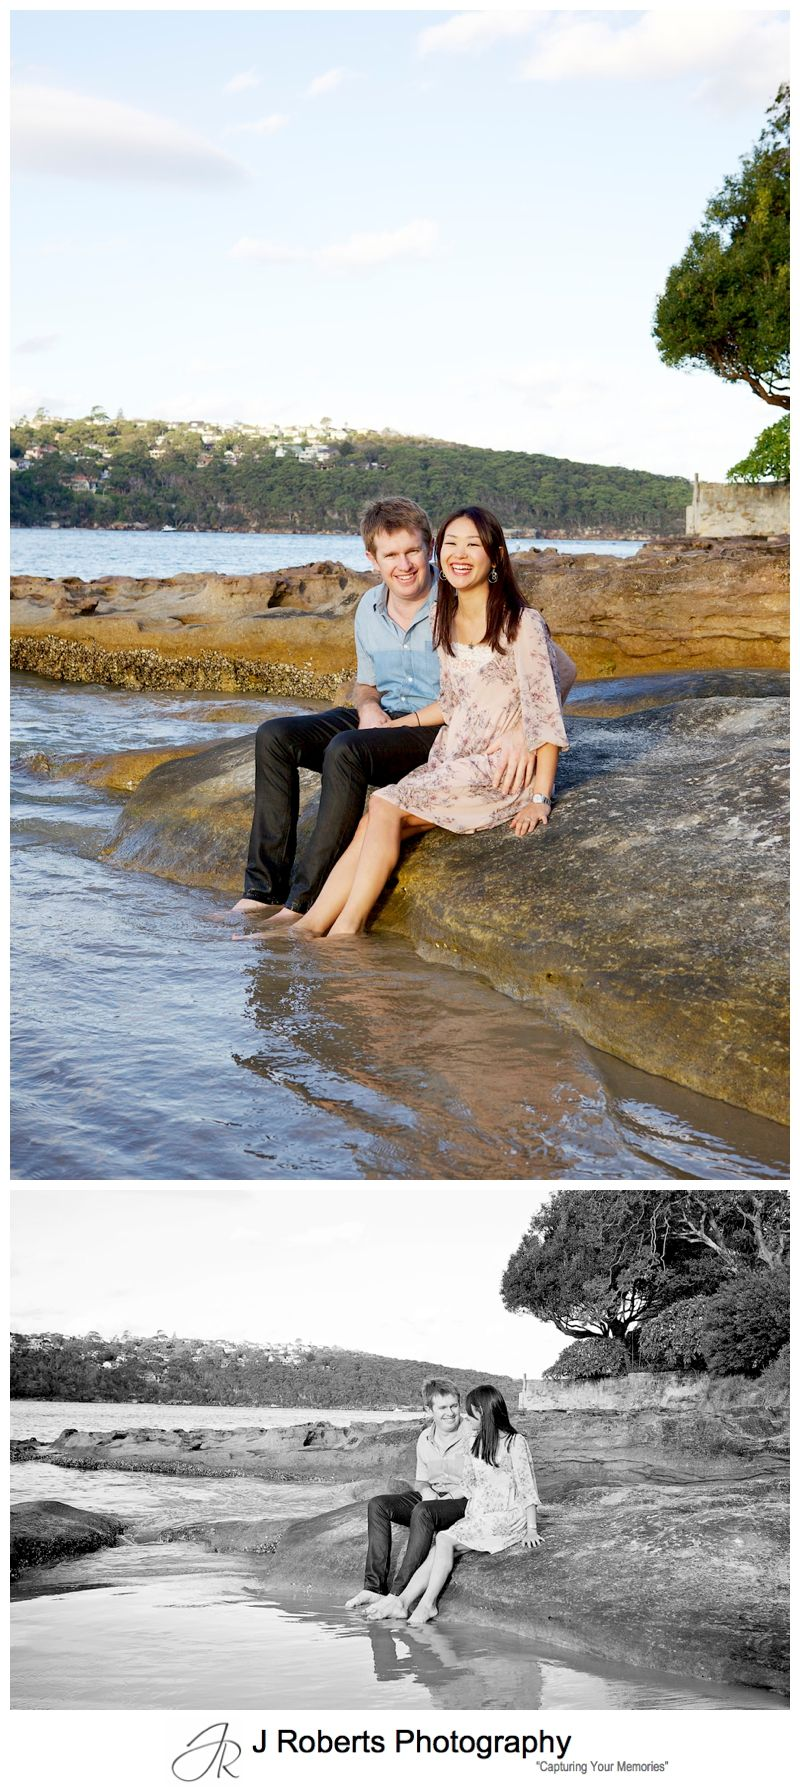 Sydney Family Portrait Photographer on location at Chinaman's Beach Mosman